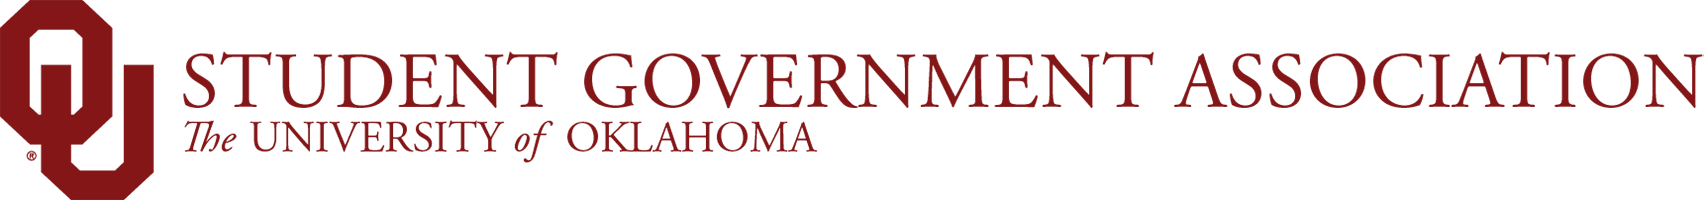 Student Government Association, The University of Oklahoma website wordmark